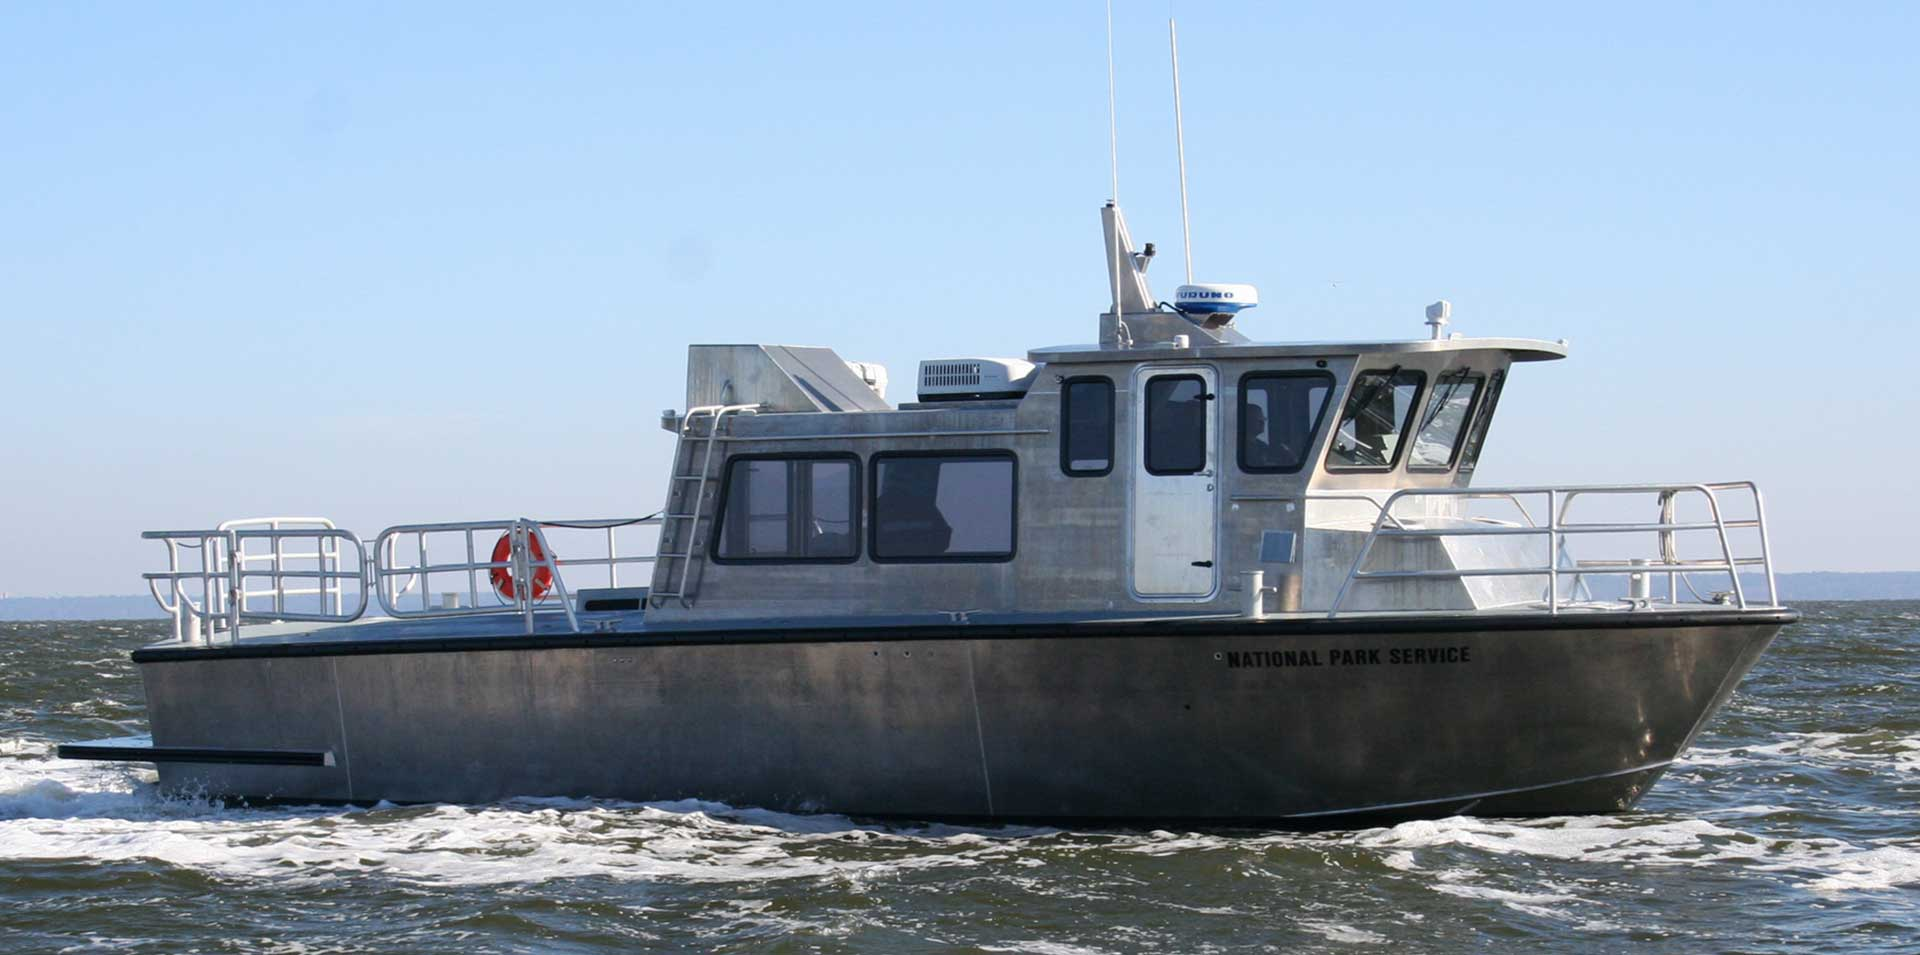 Silver Ships Endeavor Series large aluminum workboat for National park Rescue